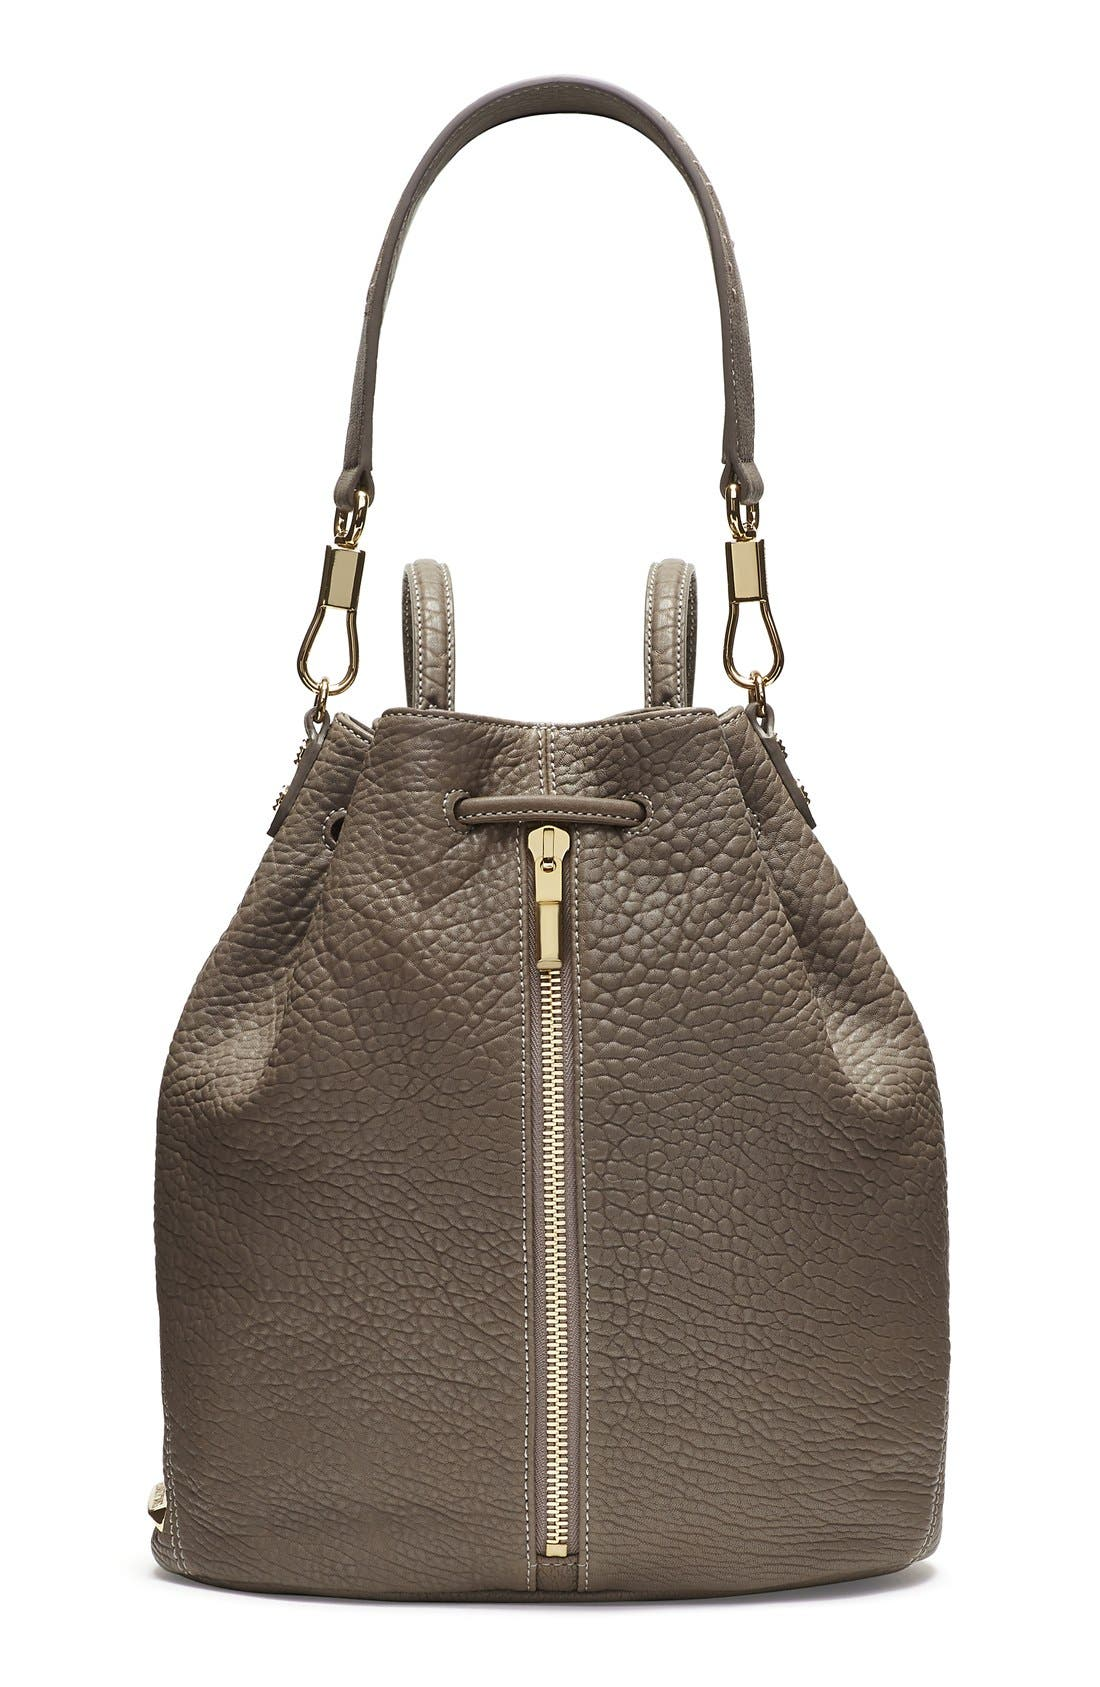 Alternate Image 1 Selected - Elizabeth and James 'Cynnie' Leather Sling Backpack